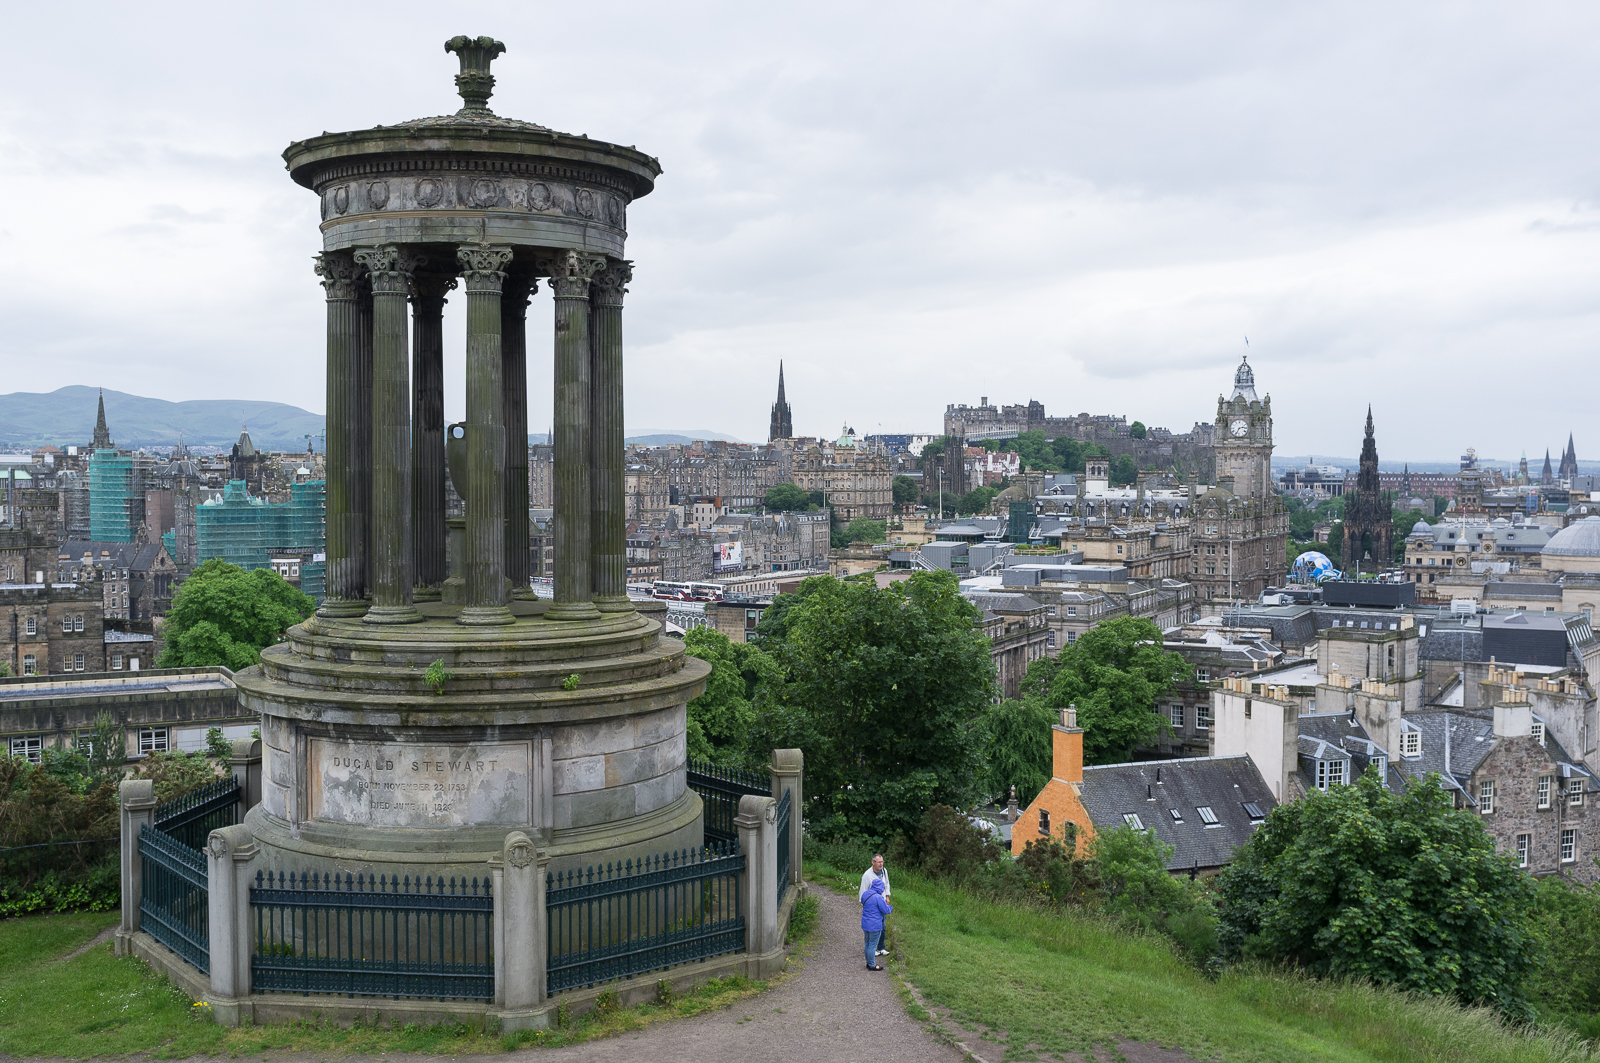 Edinburgh as seen from Calton Hill, with the Dugald Stewart Monument (left)